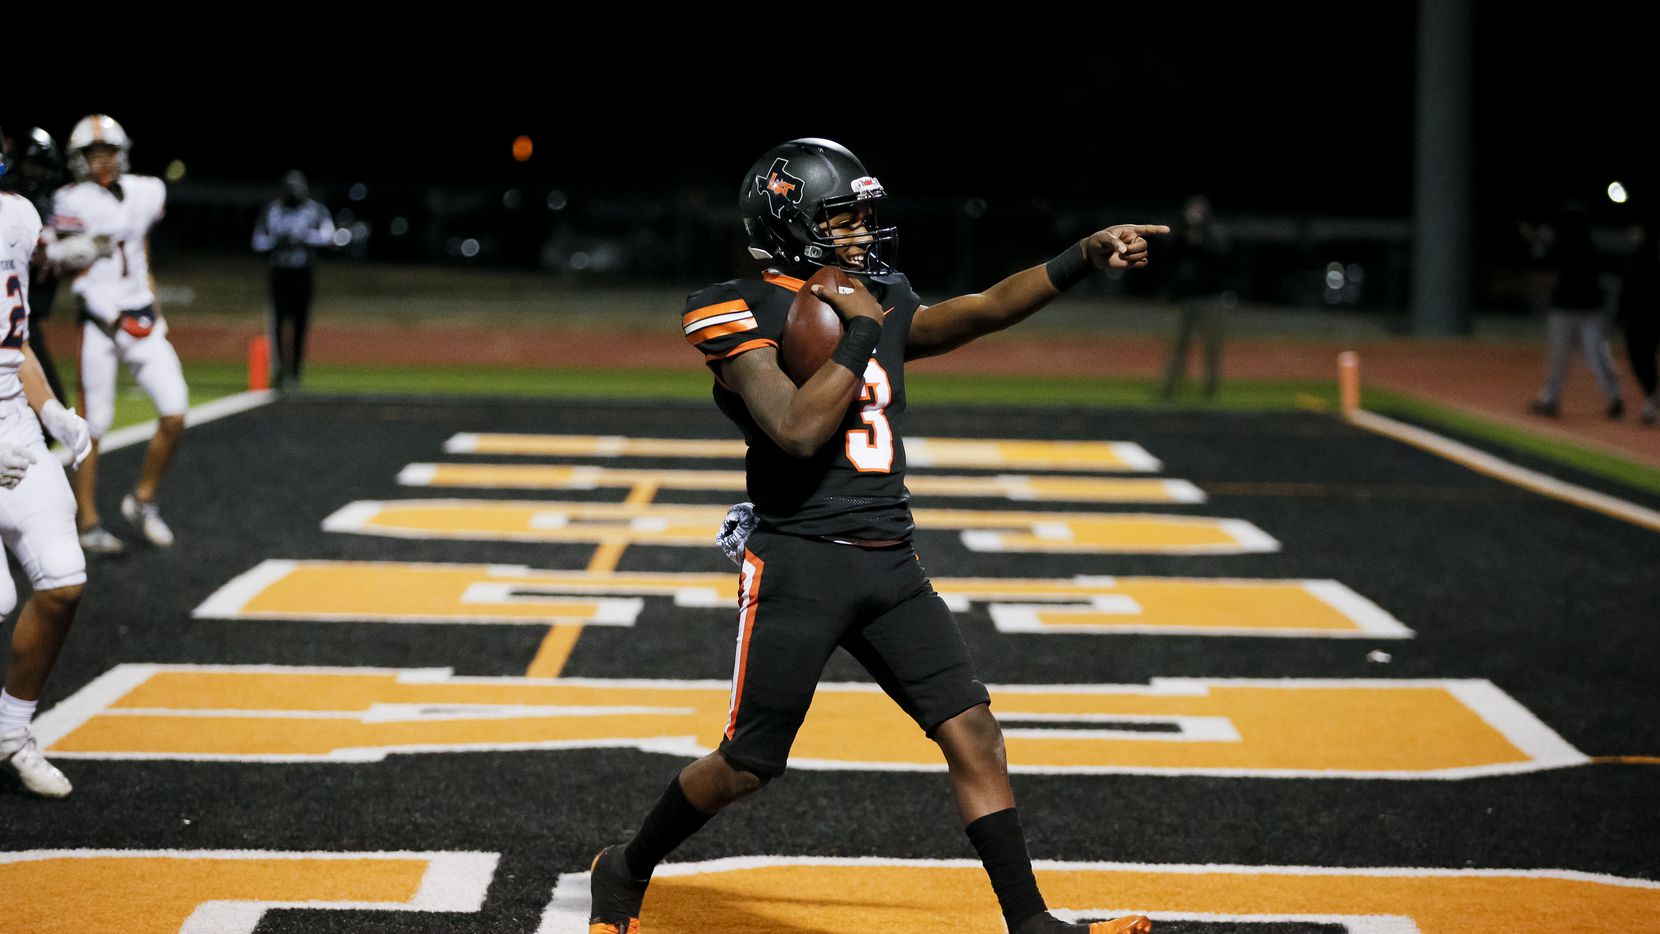 Lancaster junior quarterback Glenn Rice Jr. (3) celebrates scoring a touchdown during the first half of a class 5A Division I bi-district round playoff game against Wakeland at Tiger Stadium in Lancaster, Friday, December 11, 2020. Lancaster won 29-6.